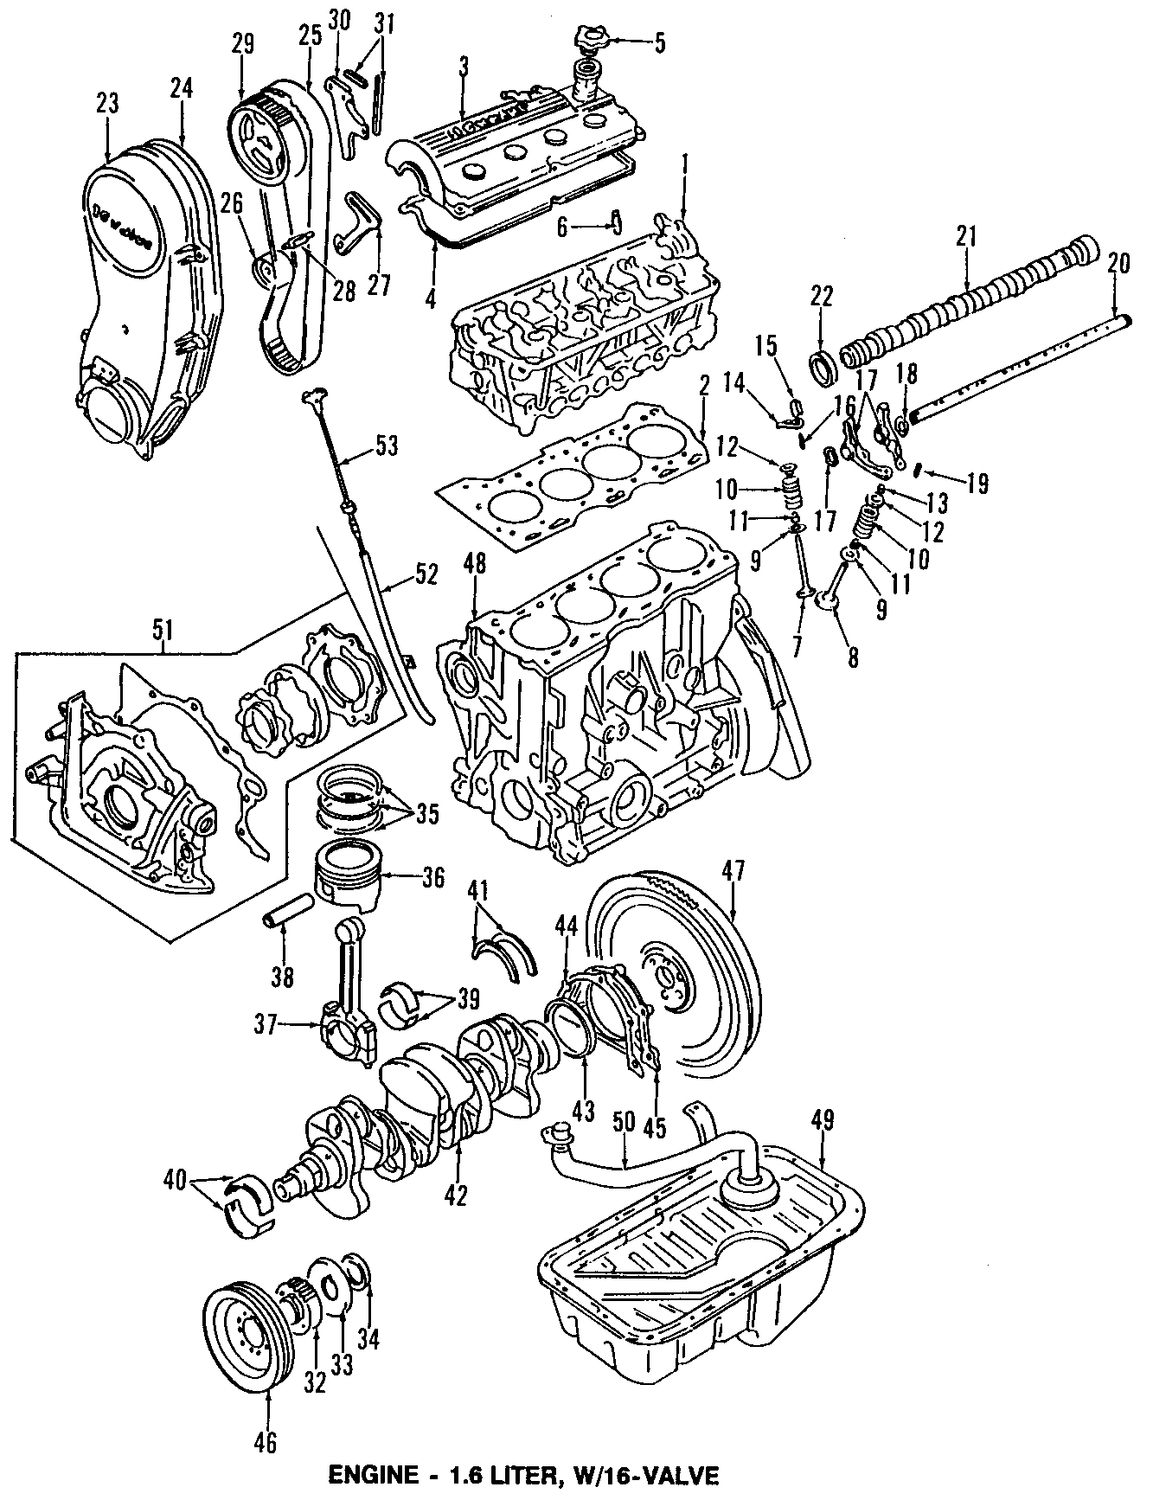 Suzuki Engine Diagram